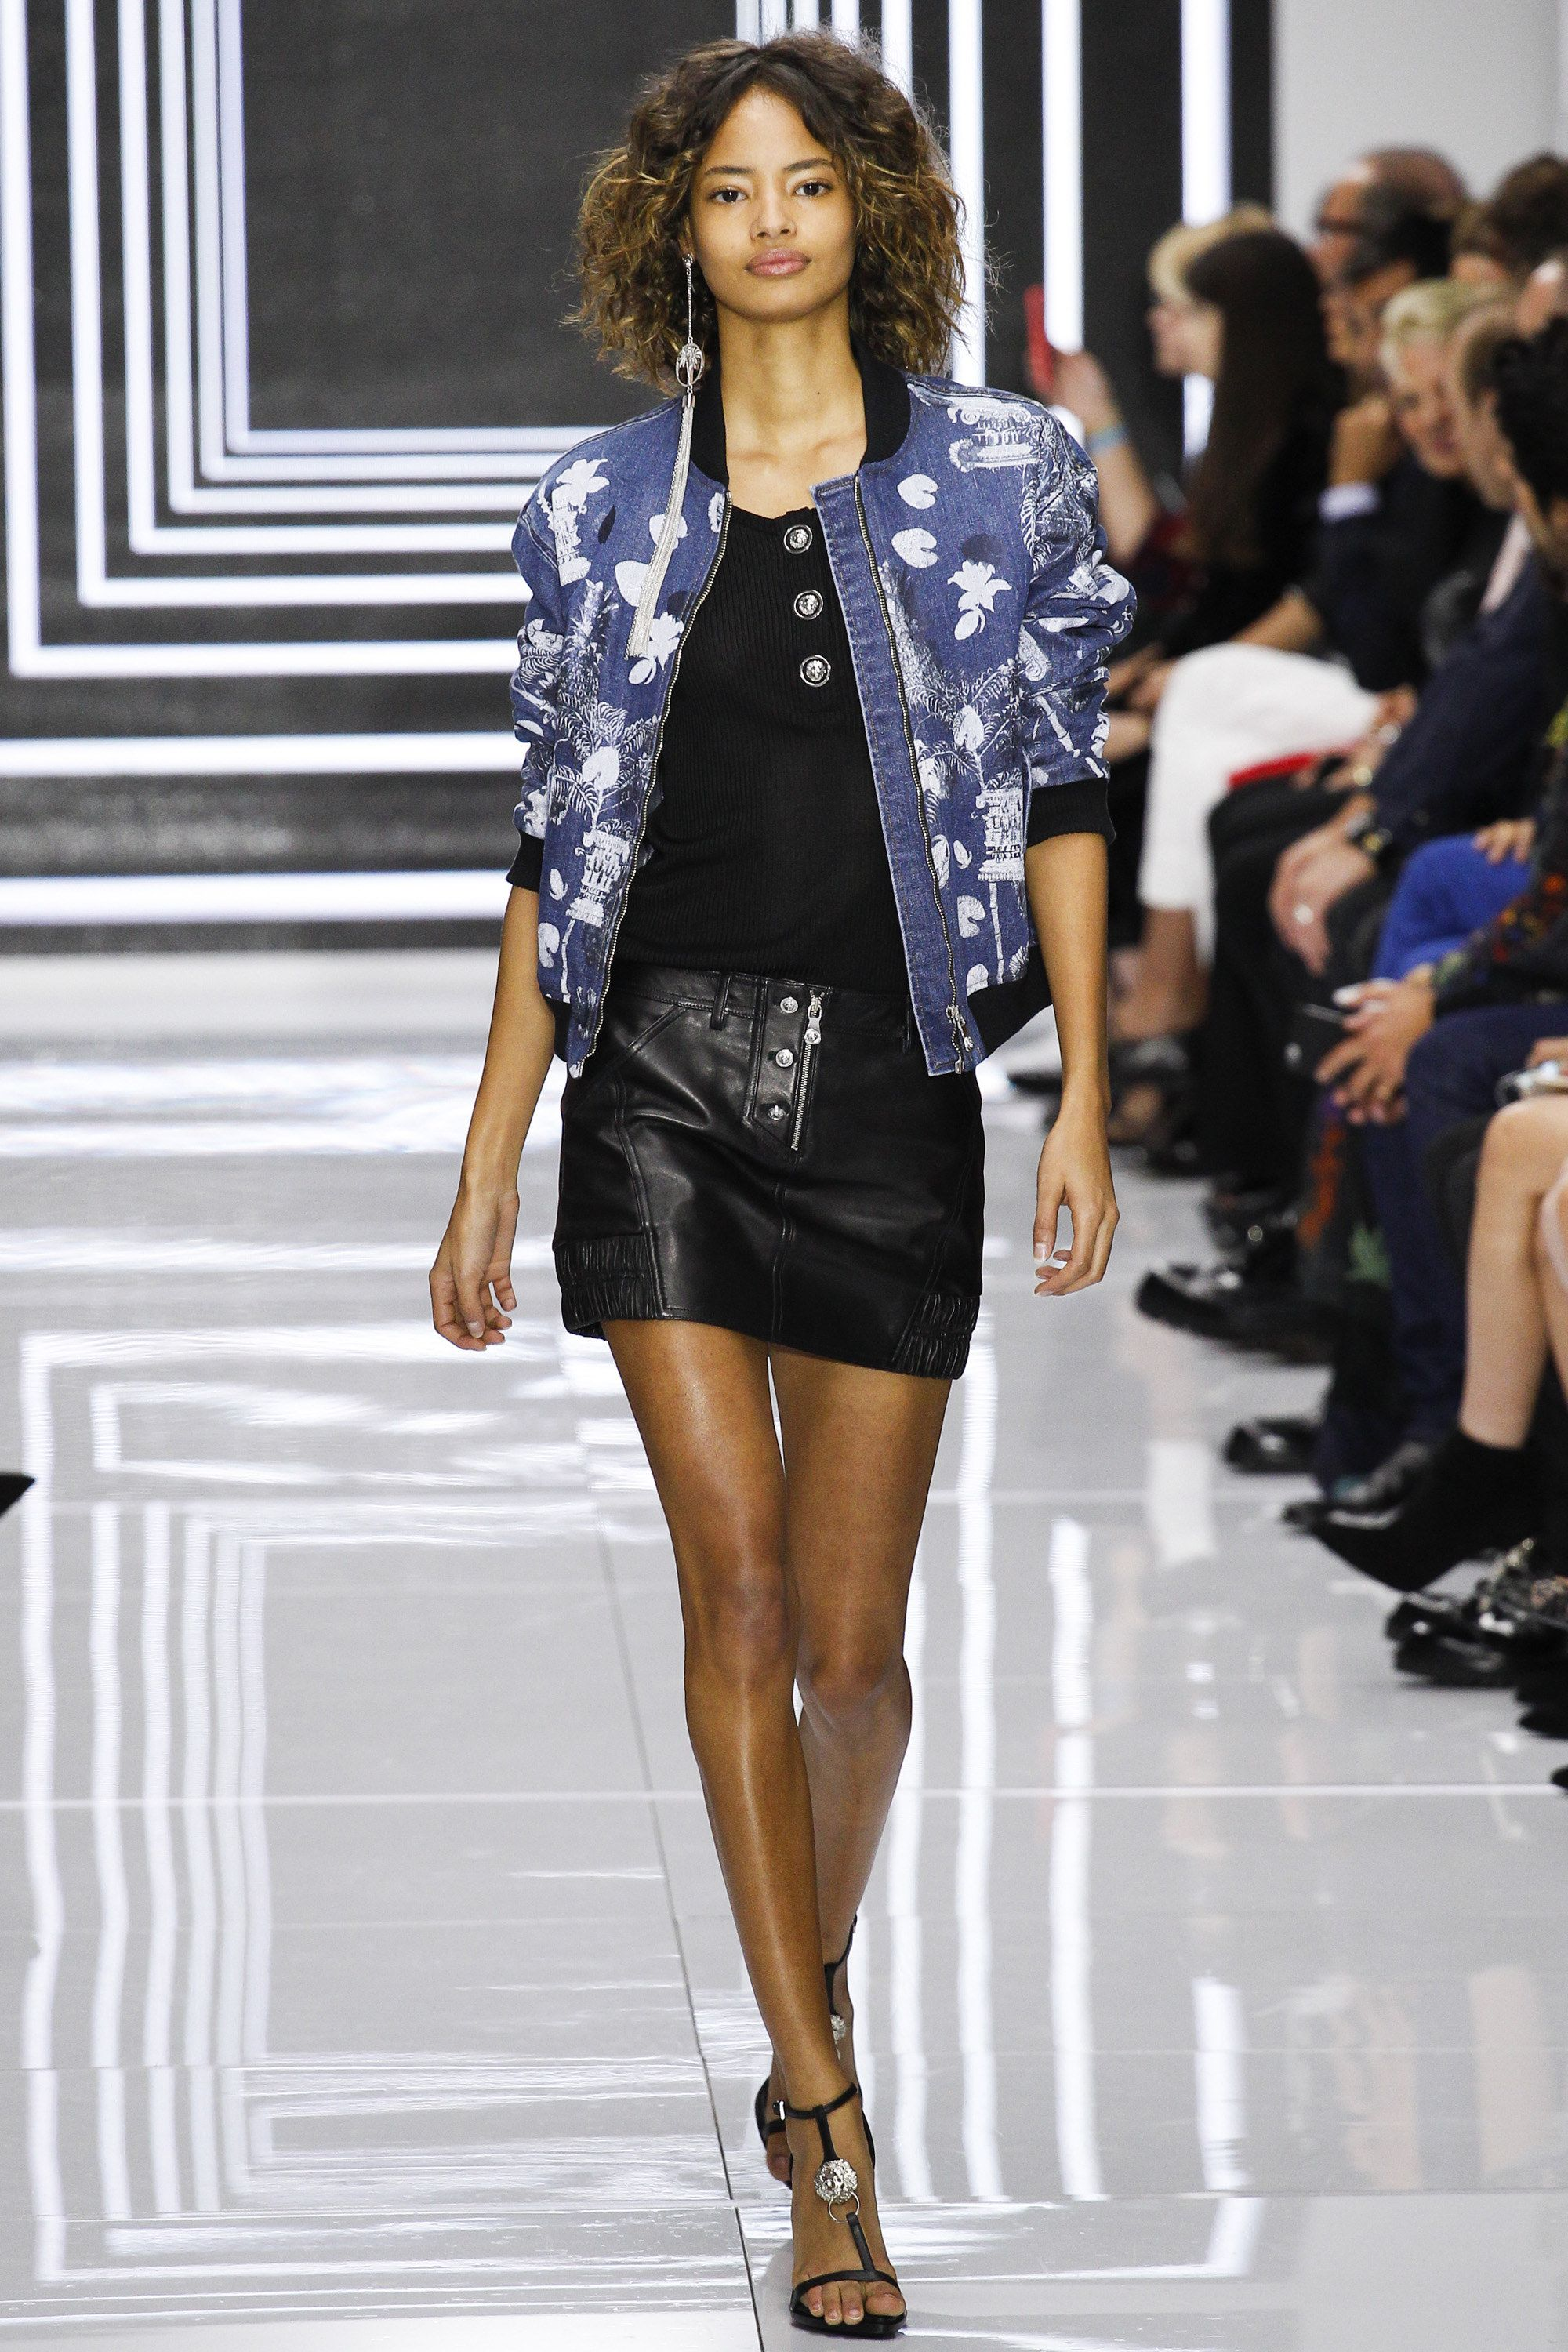 Versus Versace Spring 2016 Ready-to-Wear Fashion Show - Malaika Firth